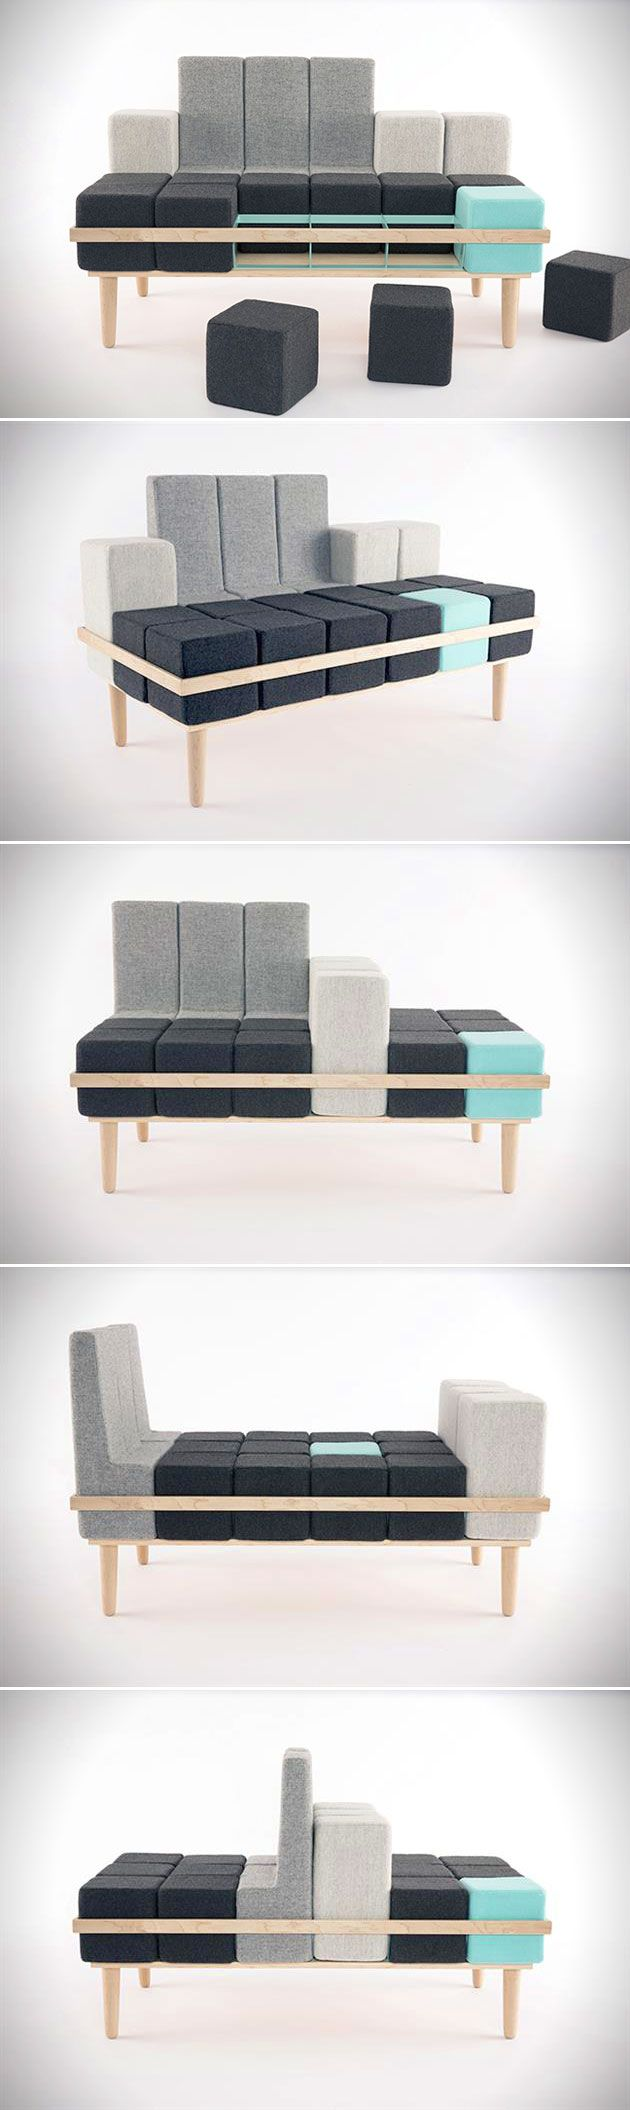 This completely modular couch was inspired by one of our favorite childhood video games, Tetris. The soft maple and steel frame allows the 18 foam cushions to be set up in a number of different configurations, limited only by your imagination.